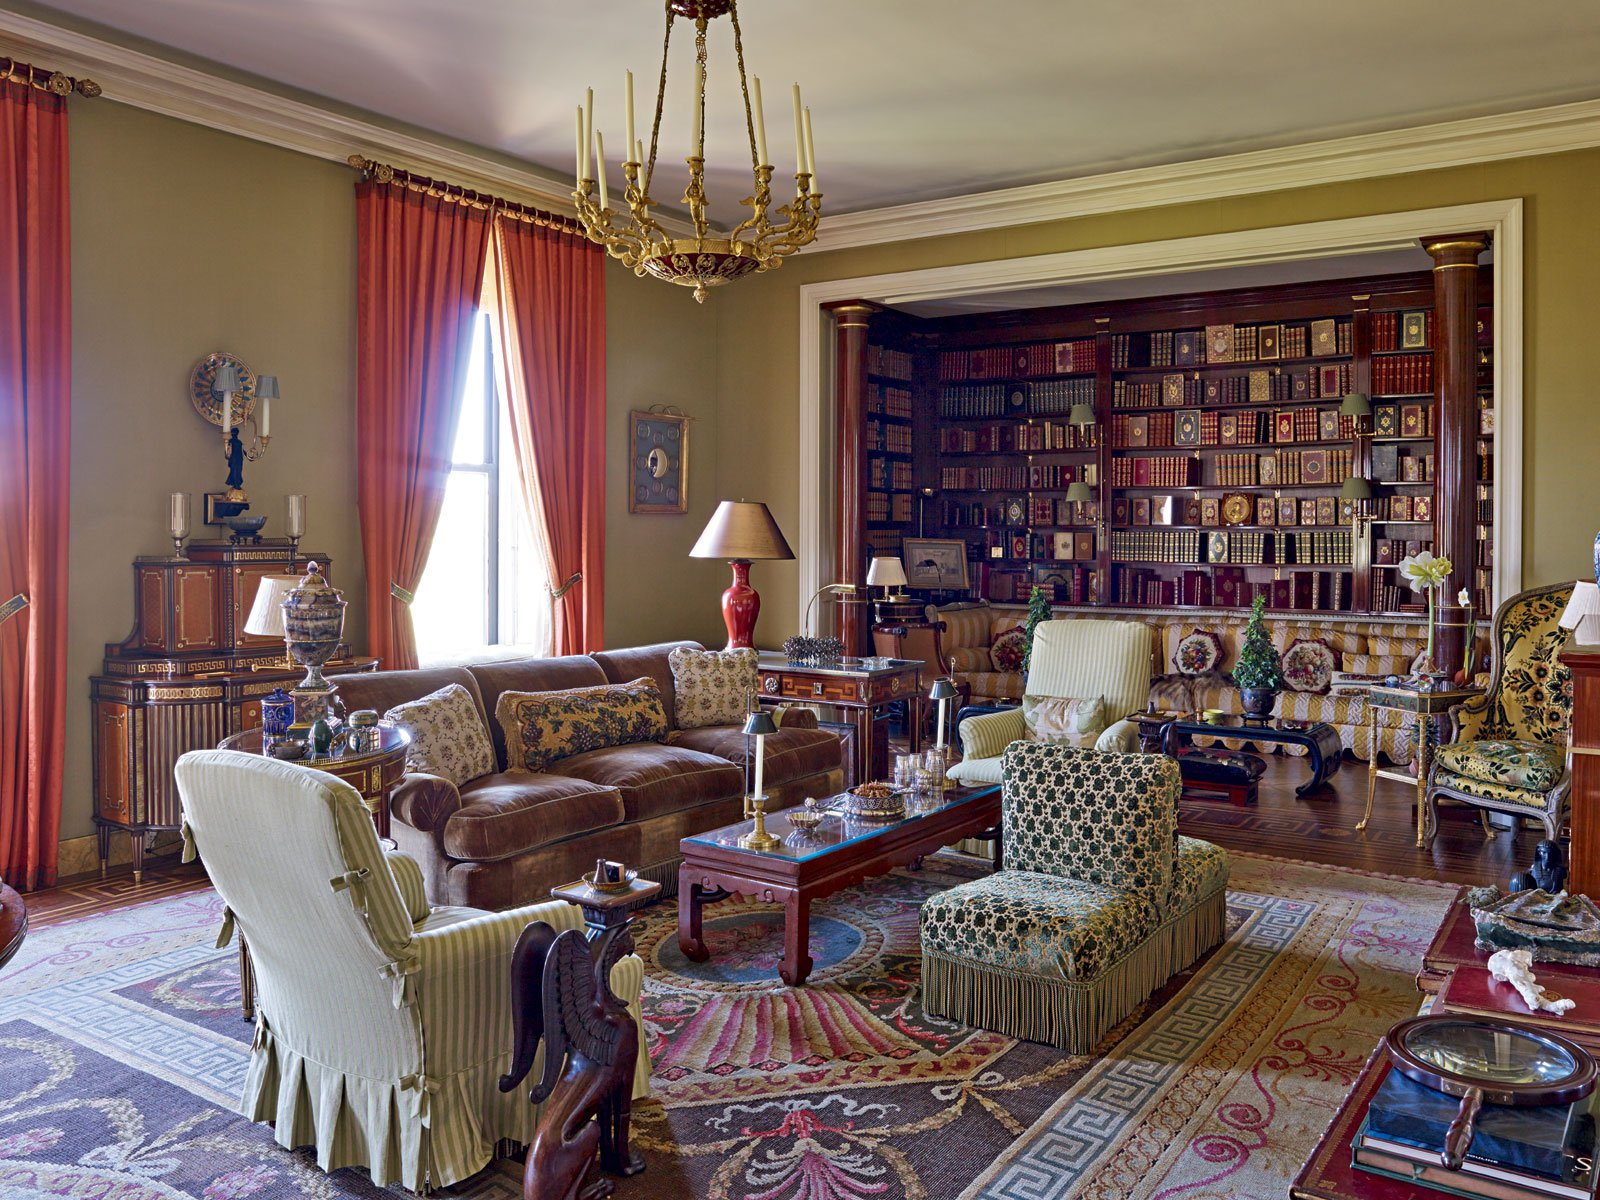 The 20-room residence has a host of grand reception rooms with views of Central Park and Fifth Avenue.